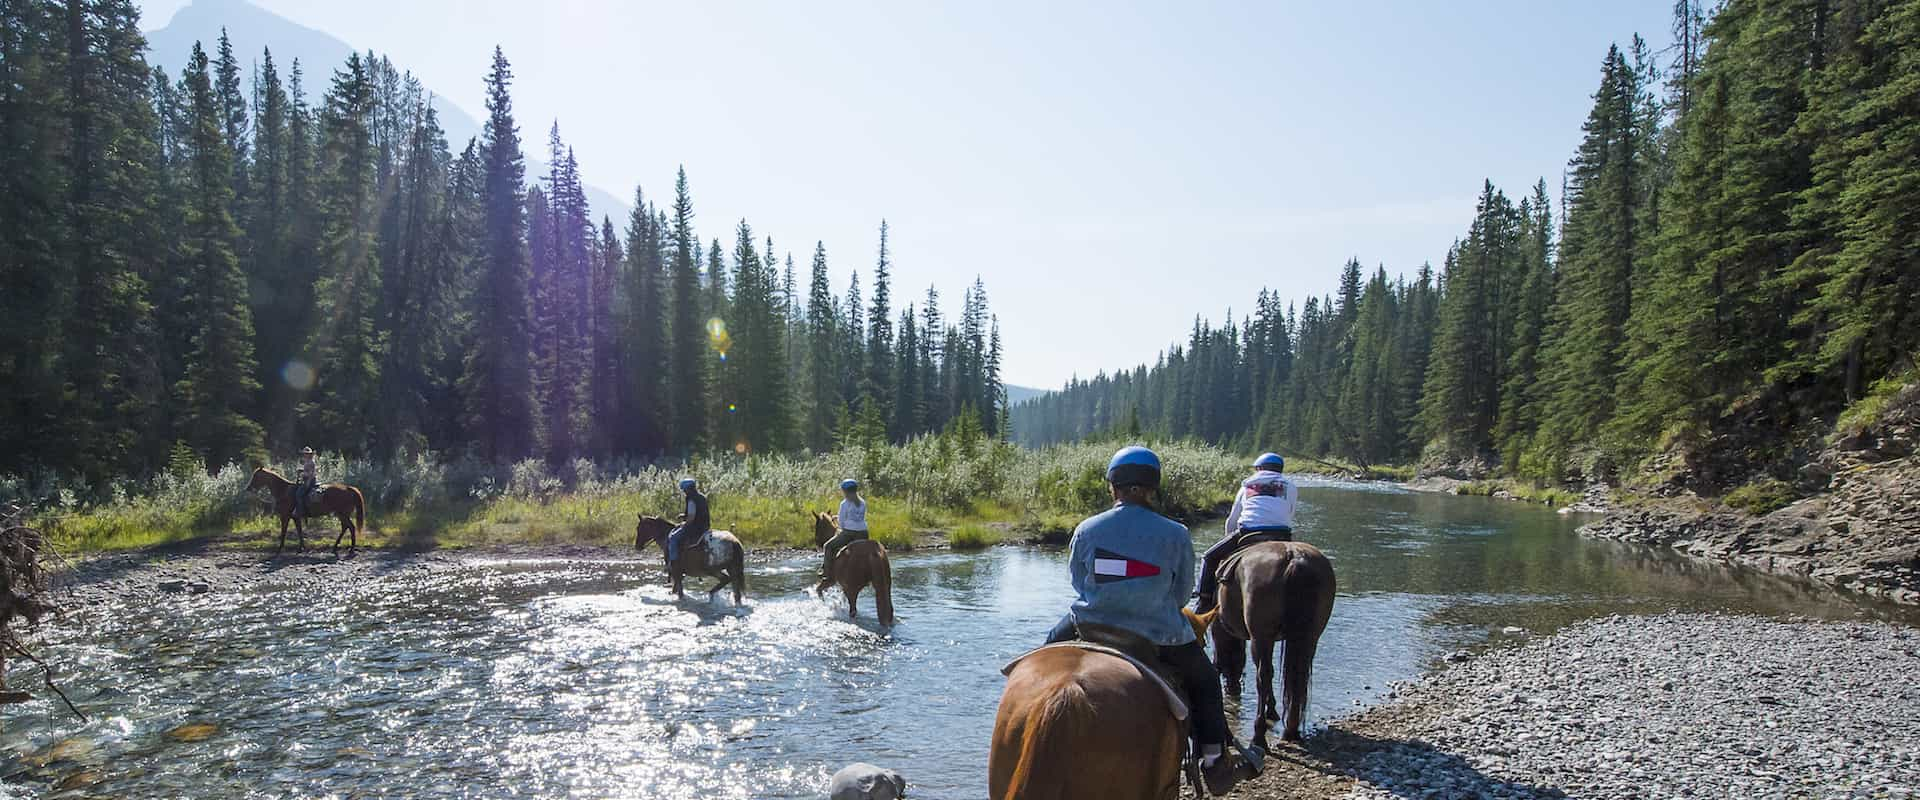 Spray River Ride – 1 Hr